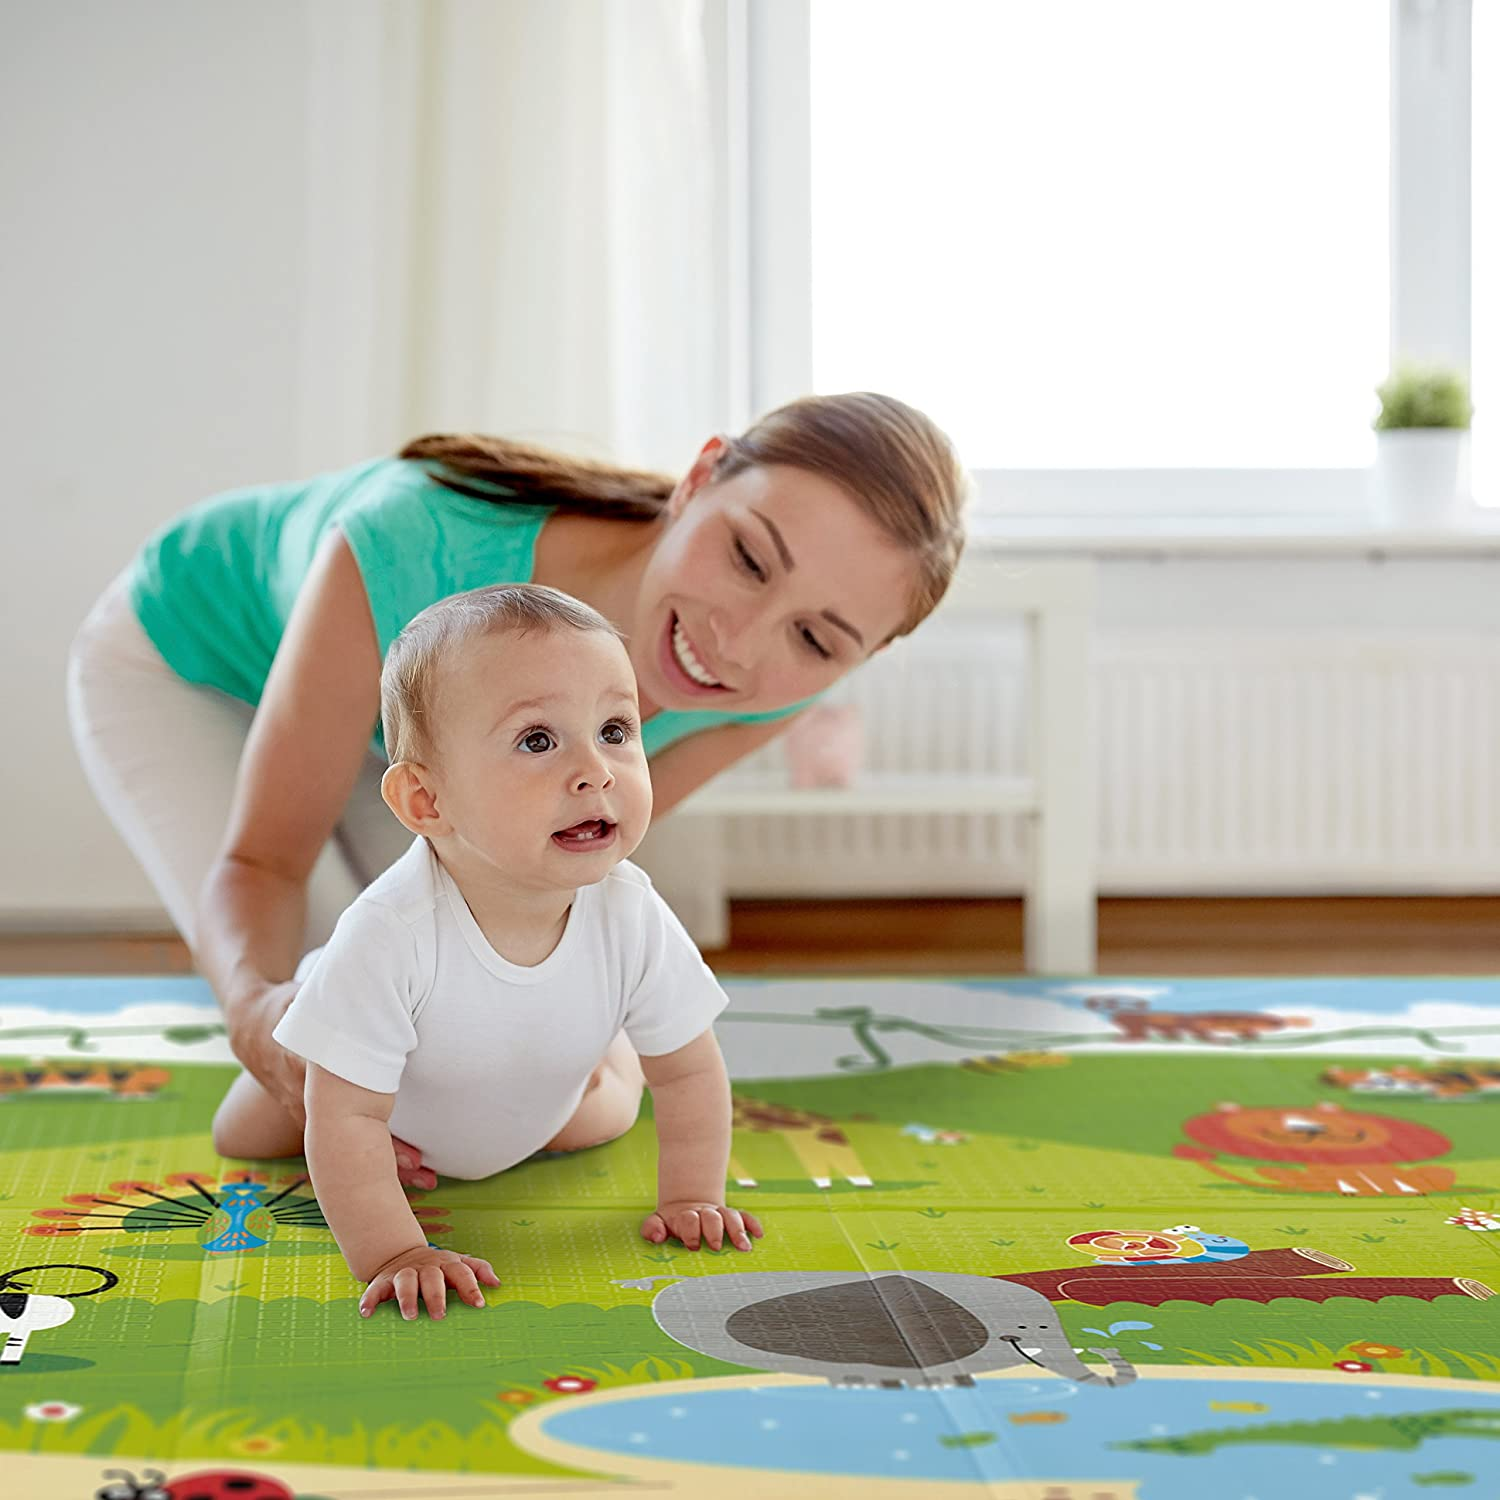 Amazon.com : Hape Baby FOLDING Play Mat For Floor | Reversible Thick, Extra  Large Foam Playmat Encourages Learning, Non Toxic, Printed, Colorful |  Ideal For ...